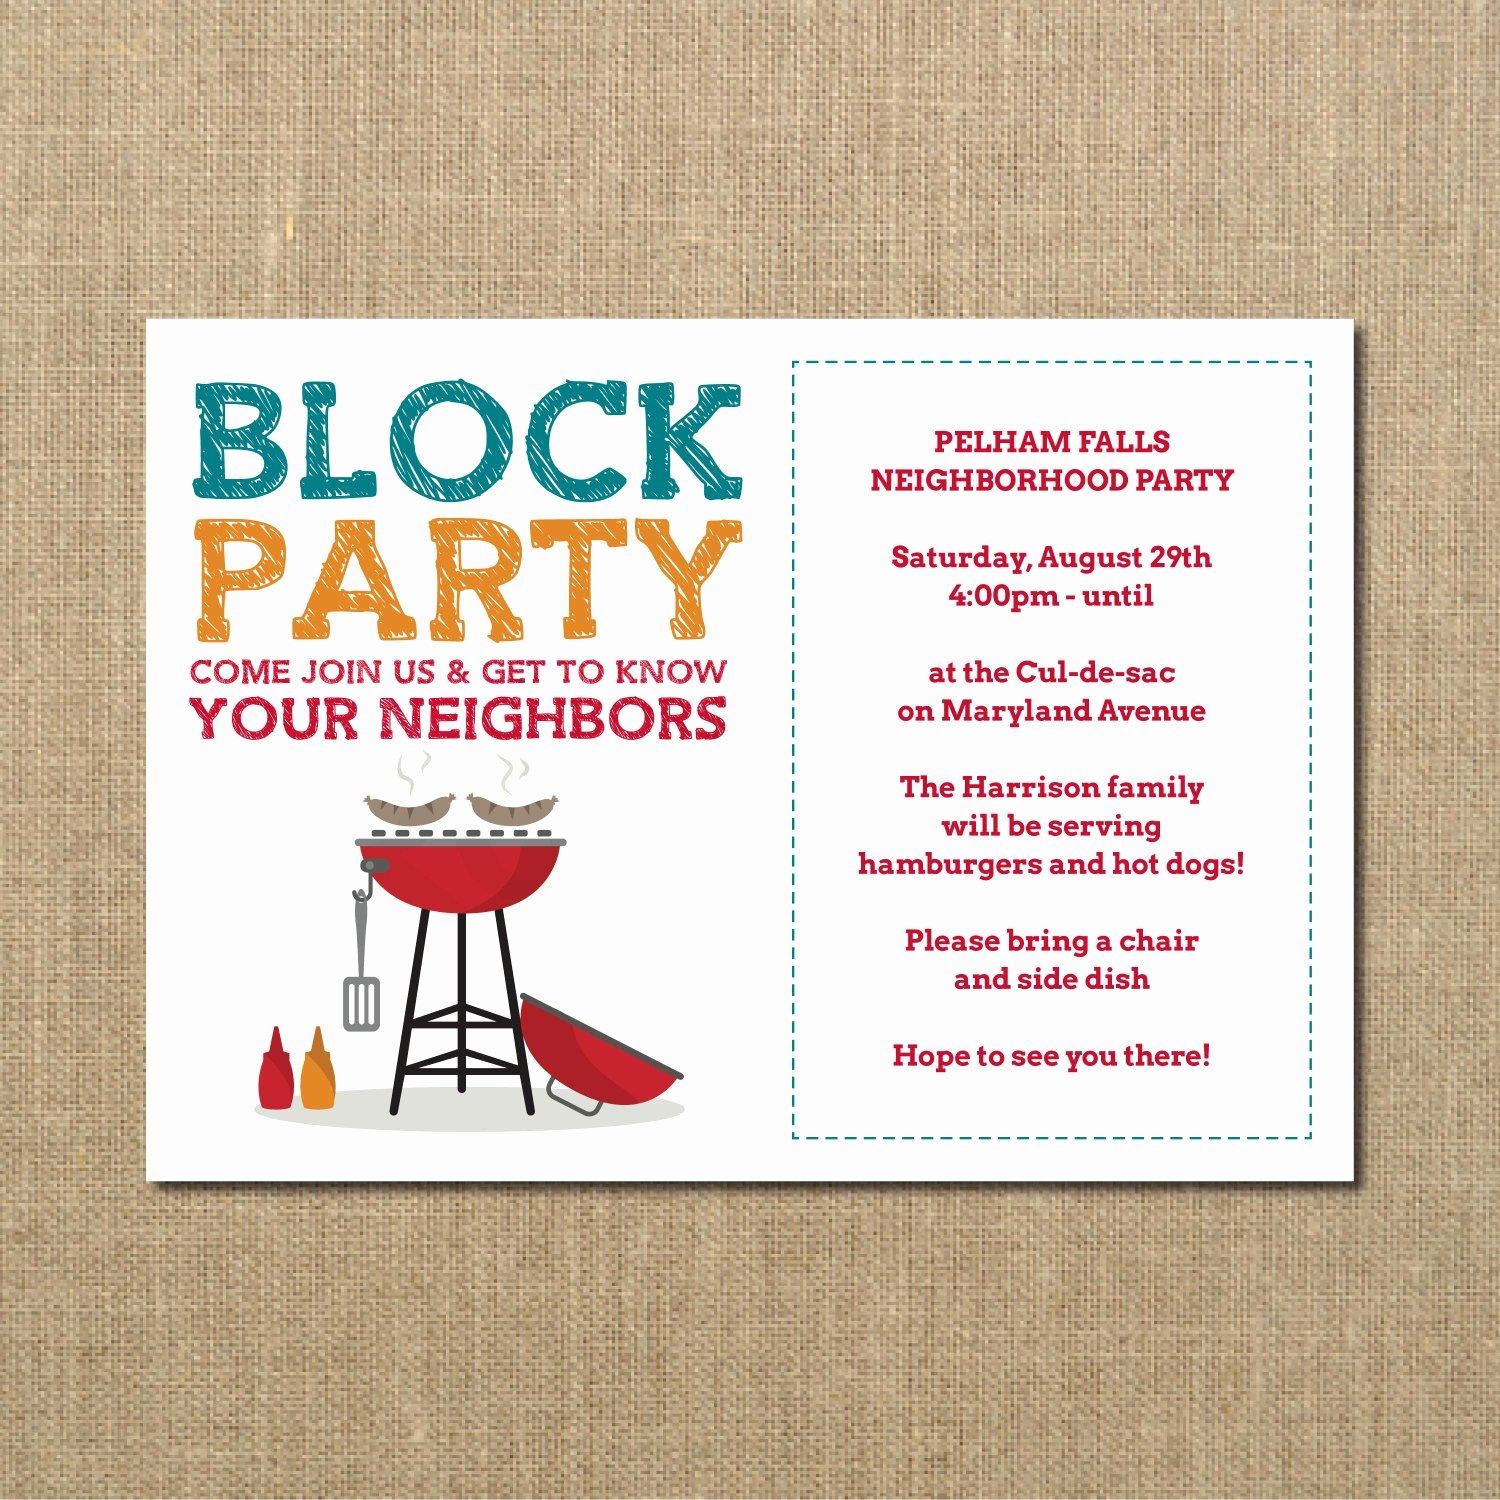 Block Party Flyer Template Best Of Neighborhood Block Party Cookout Invitation Grilling Out